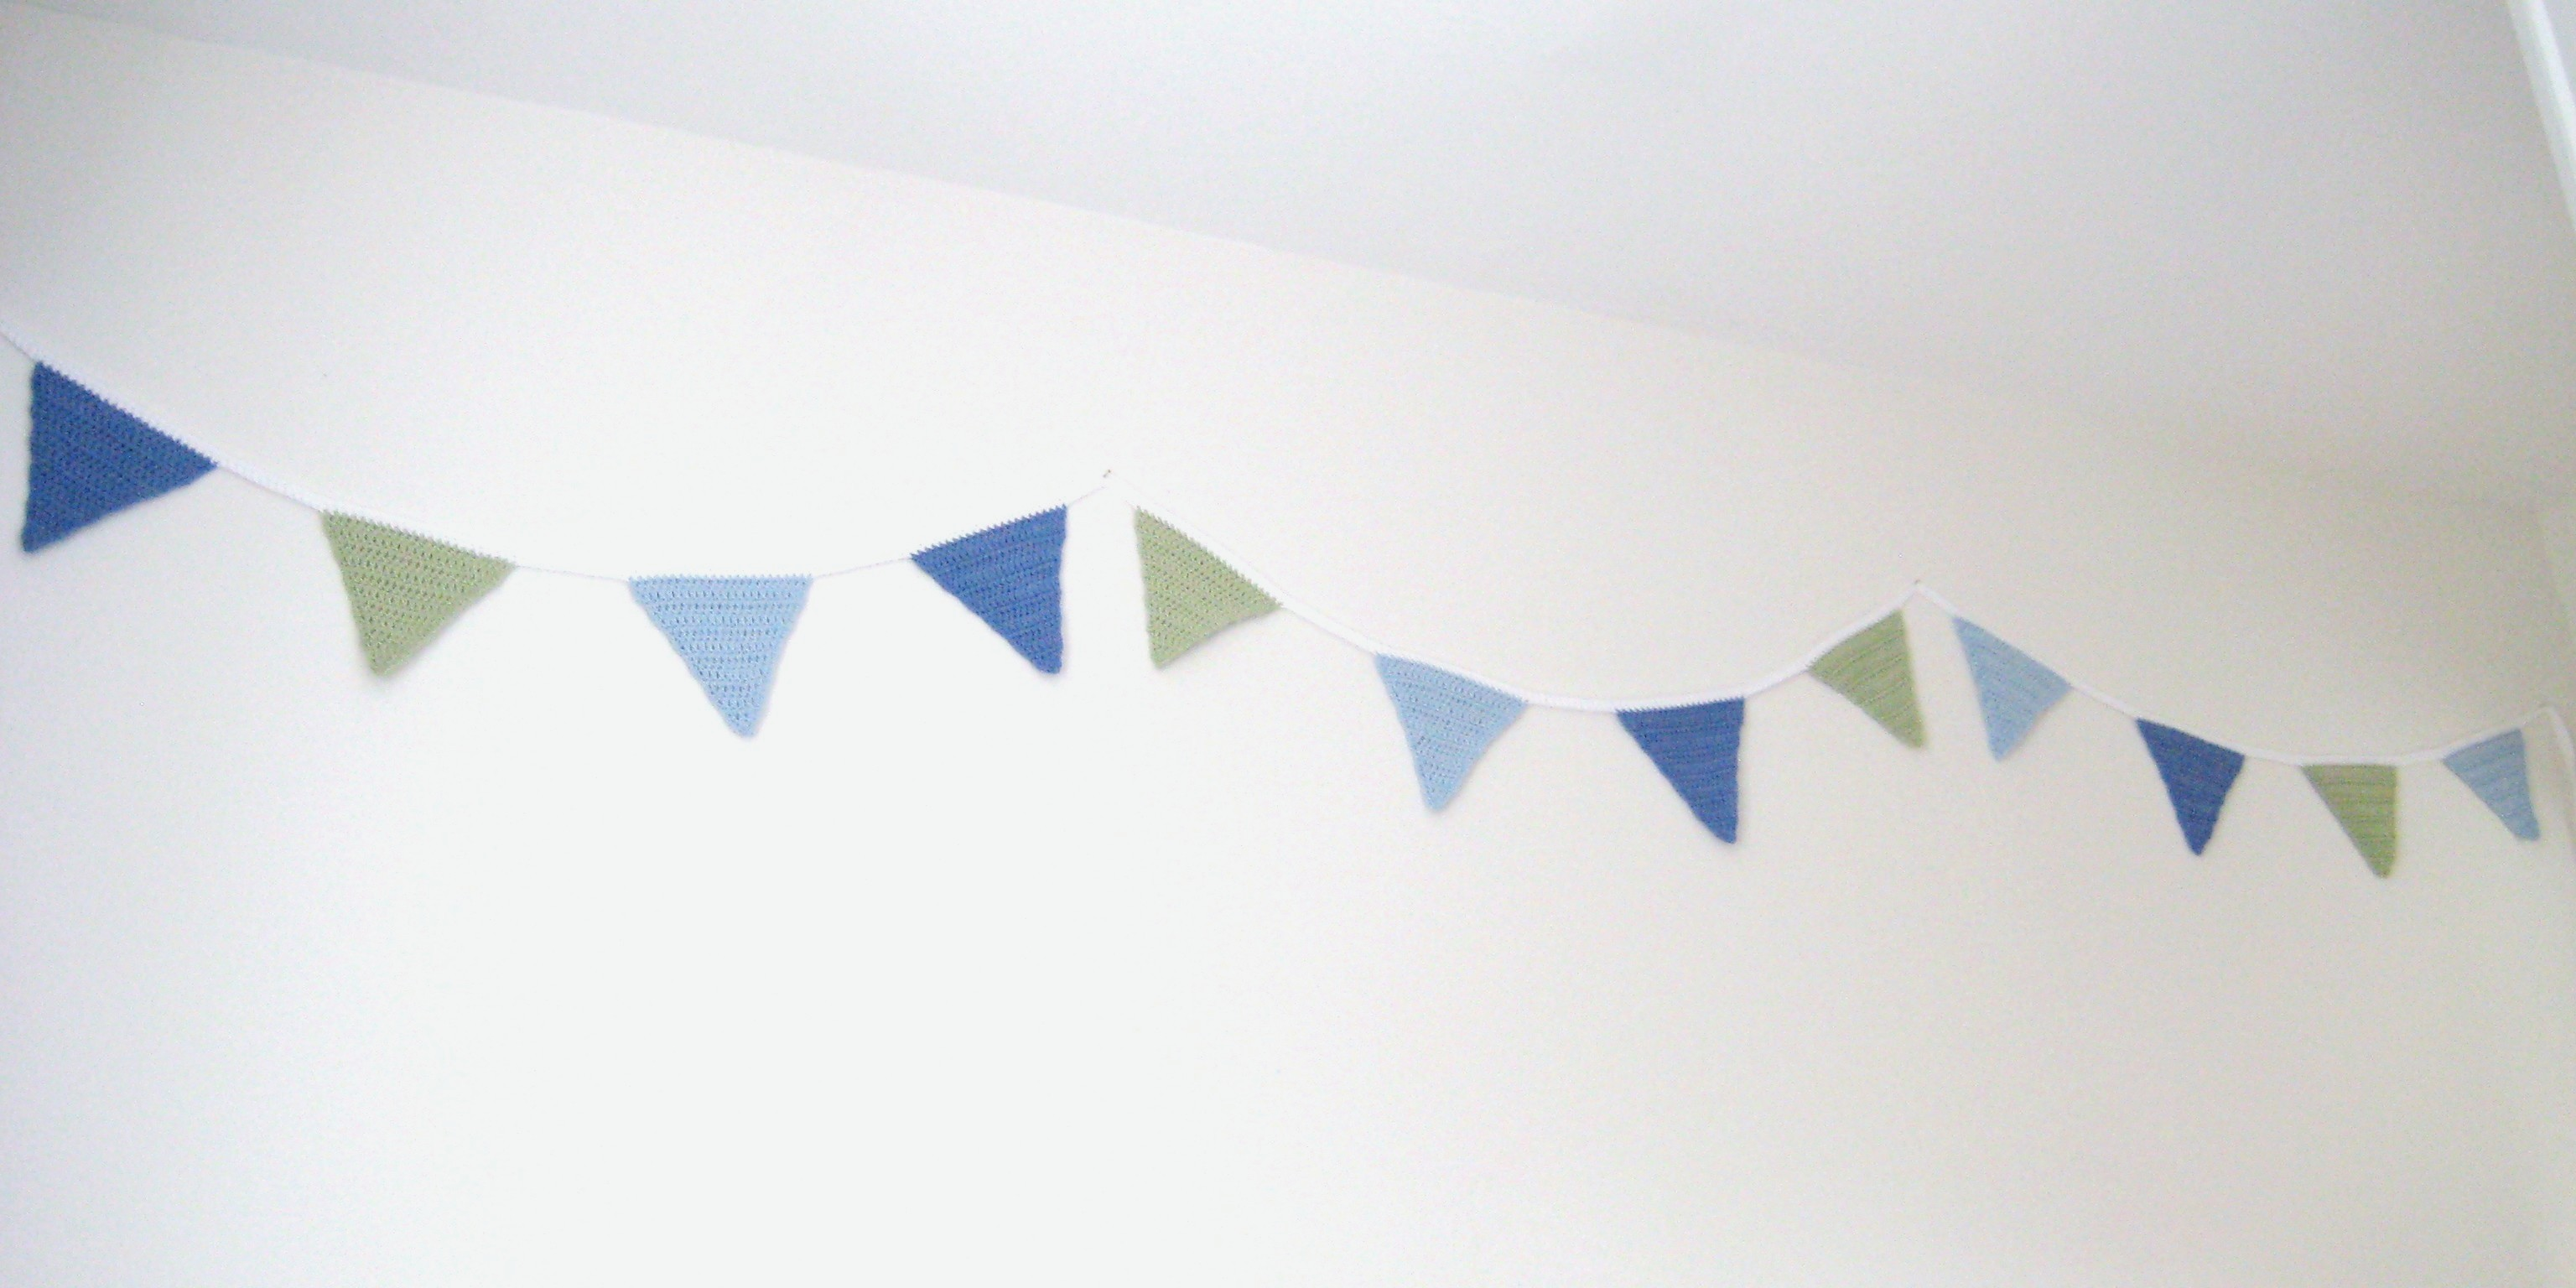 Crochet Bunting Garland, Triangle Flags, Pattern No4, in both UK and US crochet terms